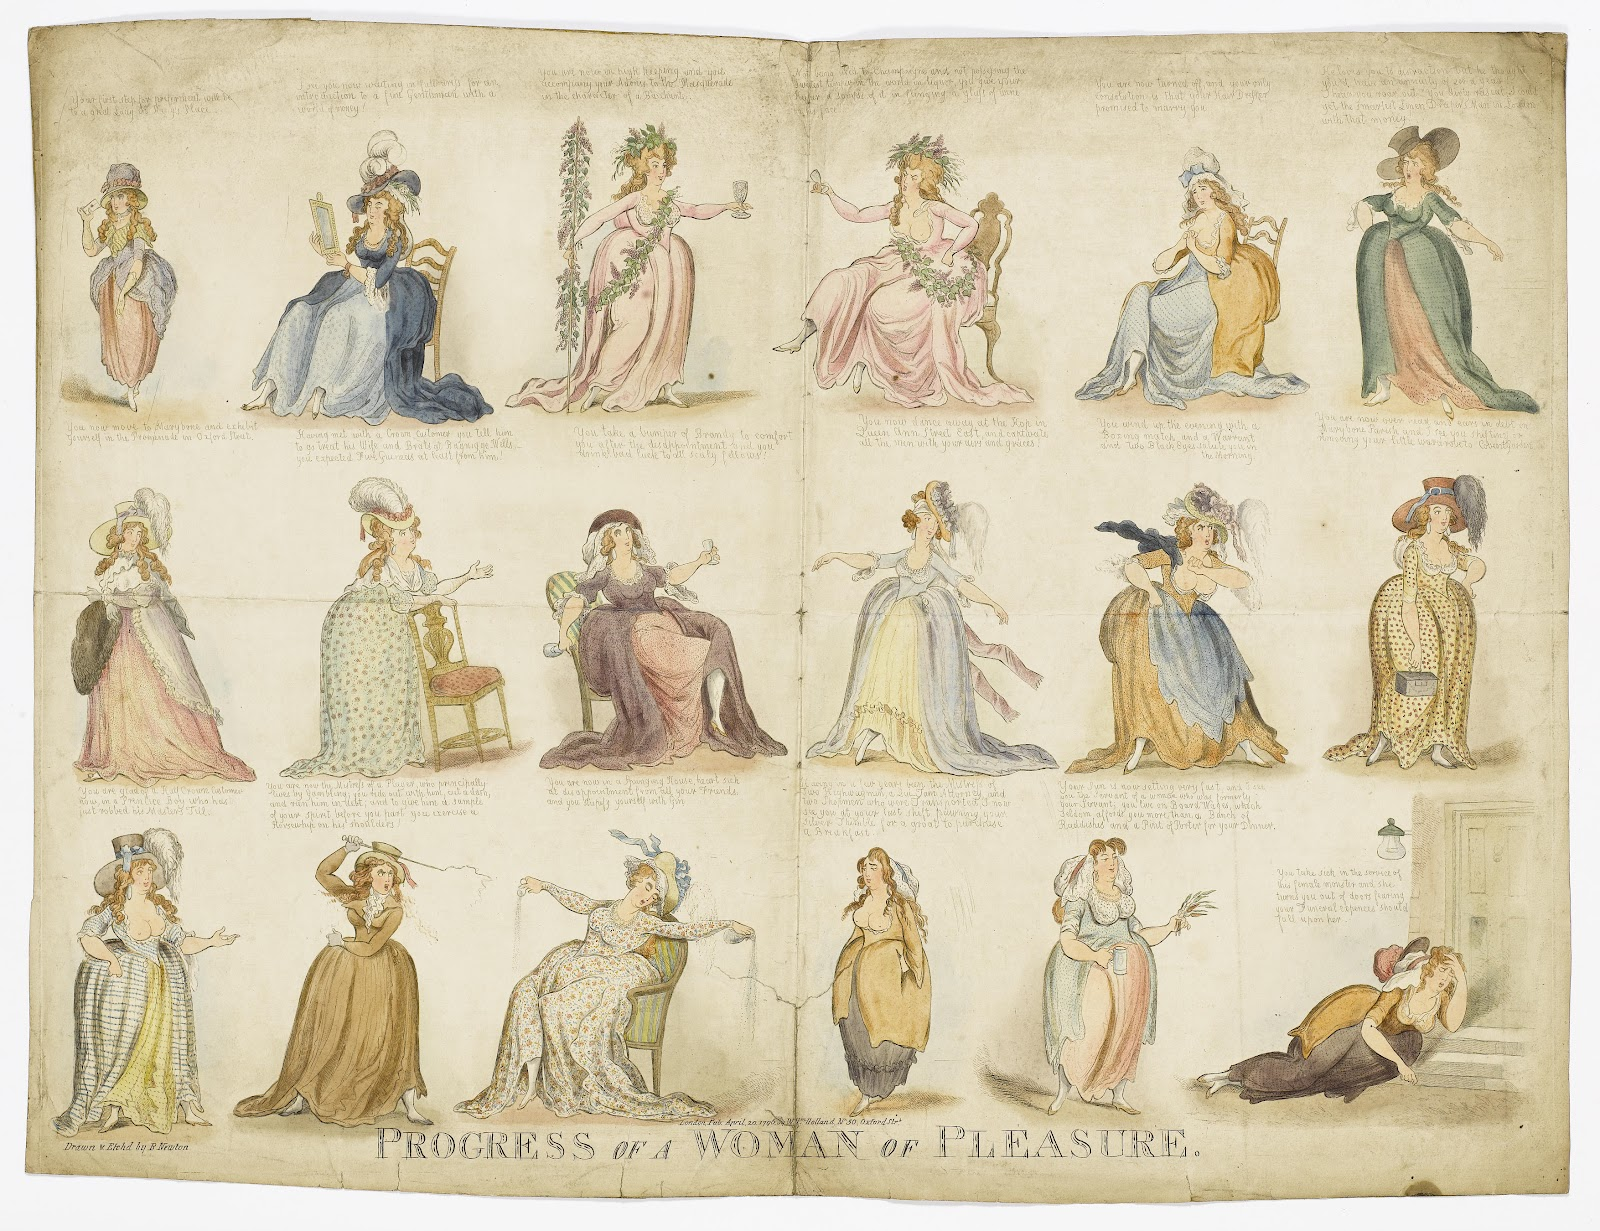 The 'Progress of a Woman of Pleasure', 1796